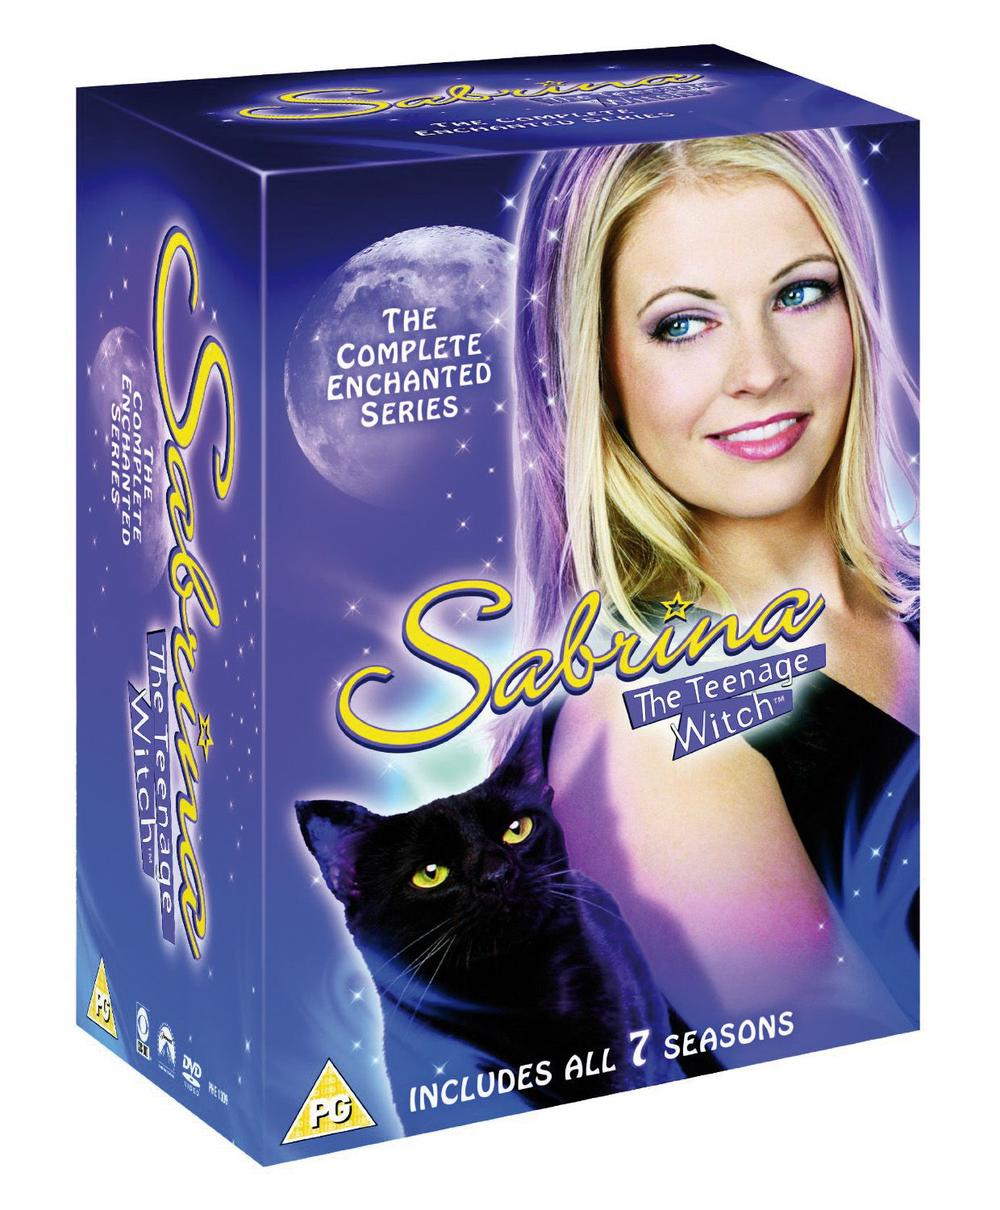 Sabrina The Teenage Witch: Complete Series